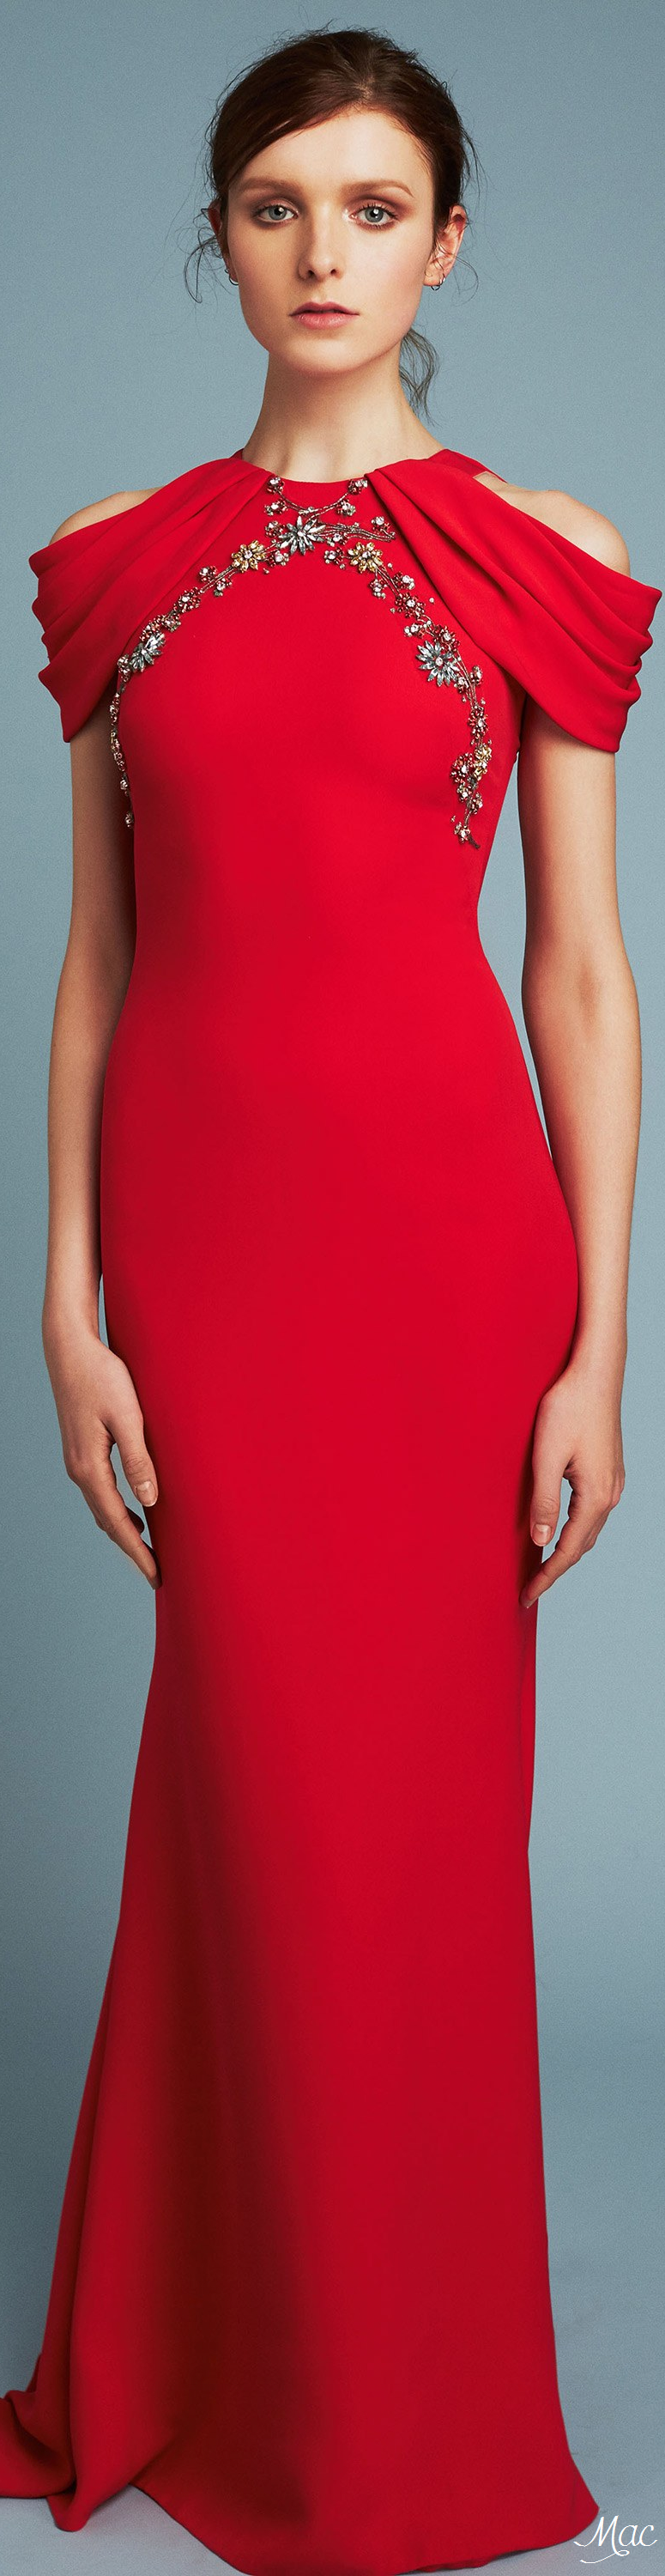 Prefall reem acra dresses pinterest gowns passion and